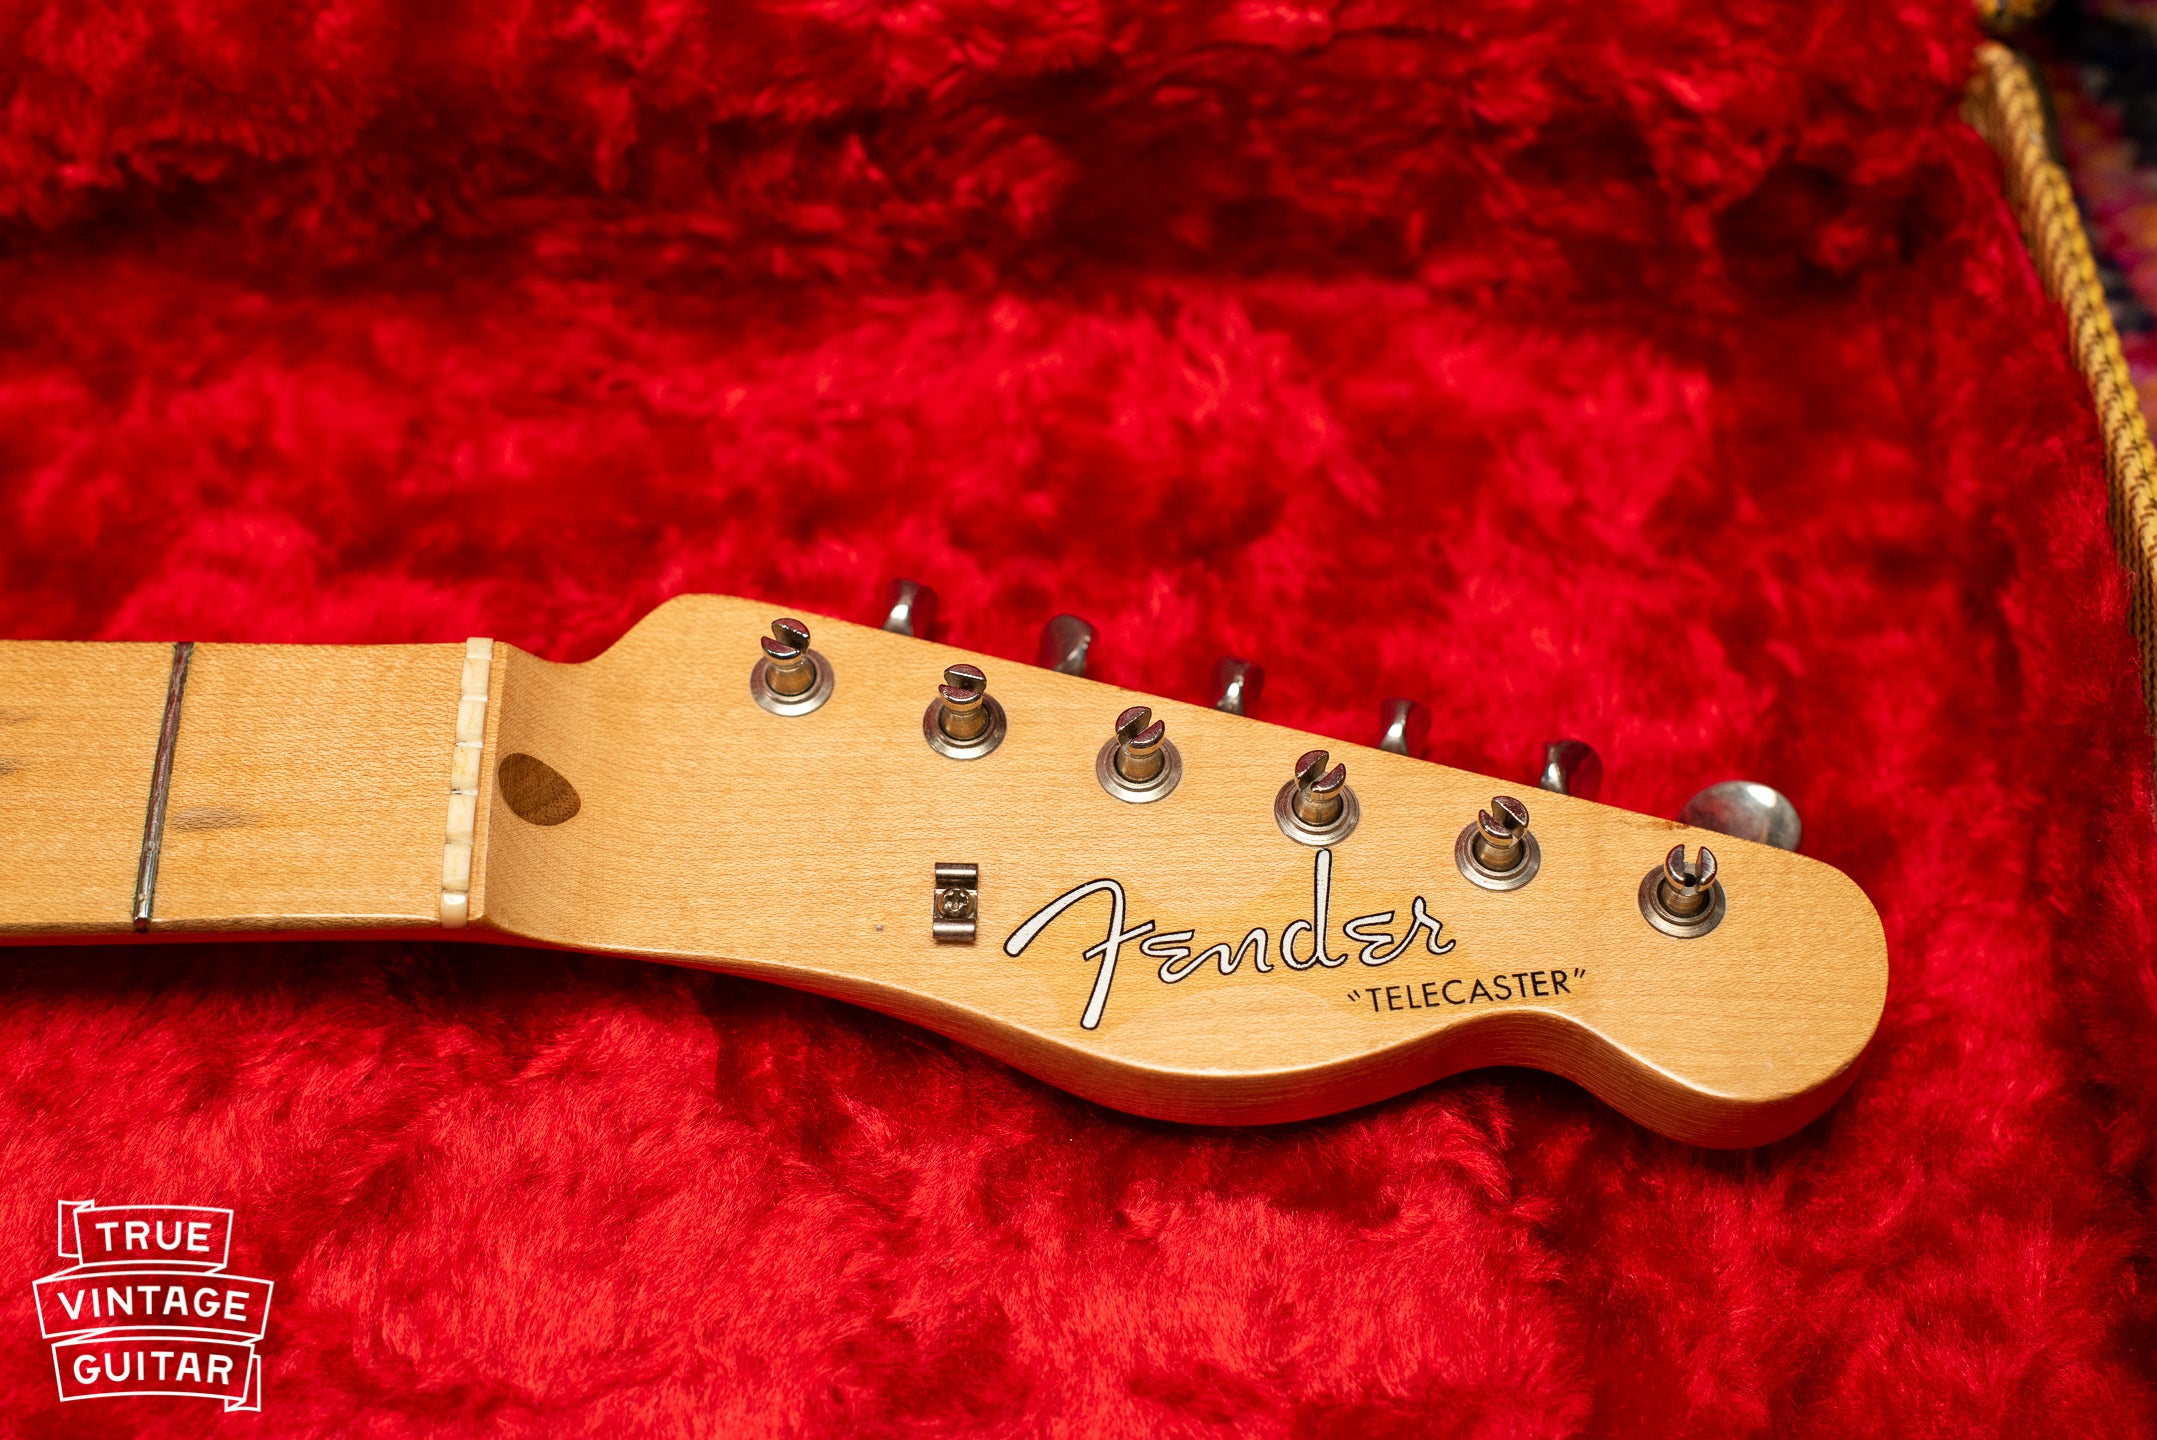 1957 Fender Telecaster Blond headstock, string tree, Fender logo